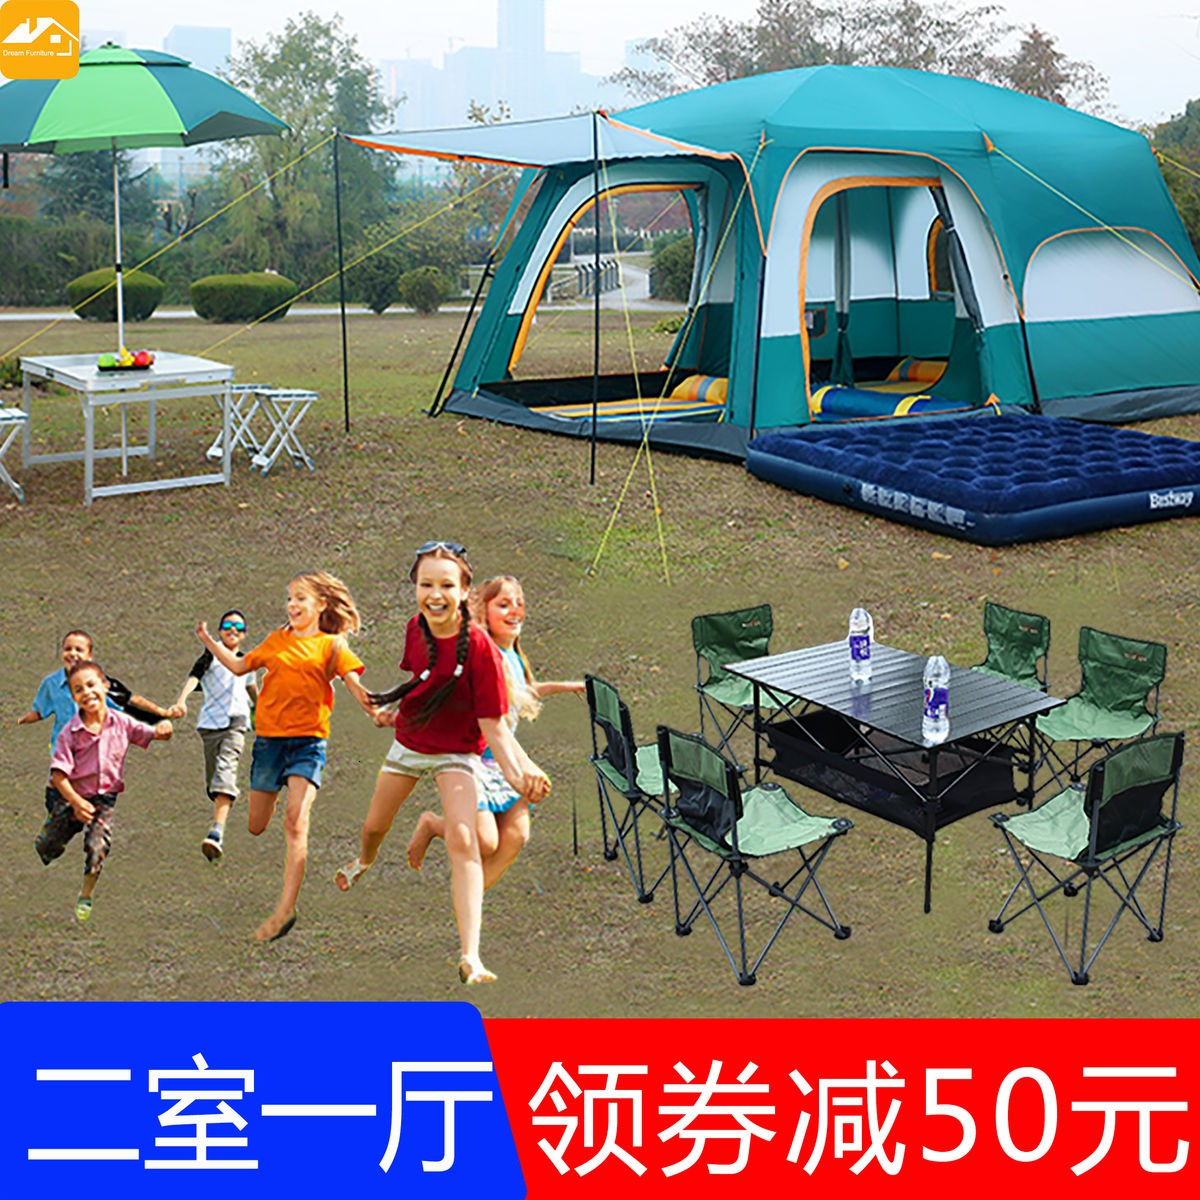 Outdoor Thickened 3 4 6 10 People Camping Rainproof 2 Bedroom 1 Living Room Luxury Villa Travel Tent Shopee Malaysia